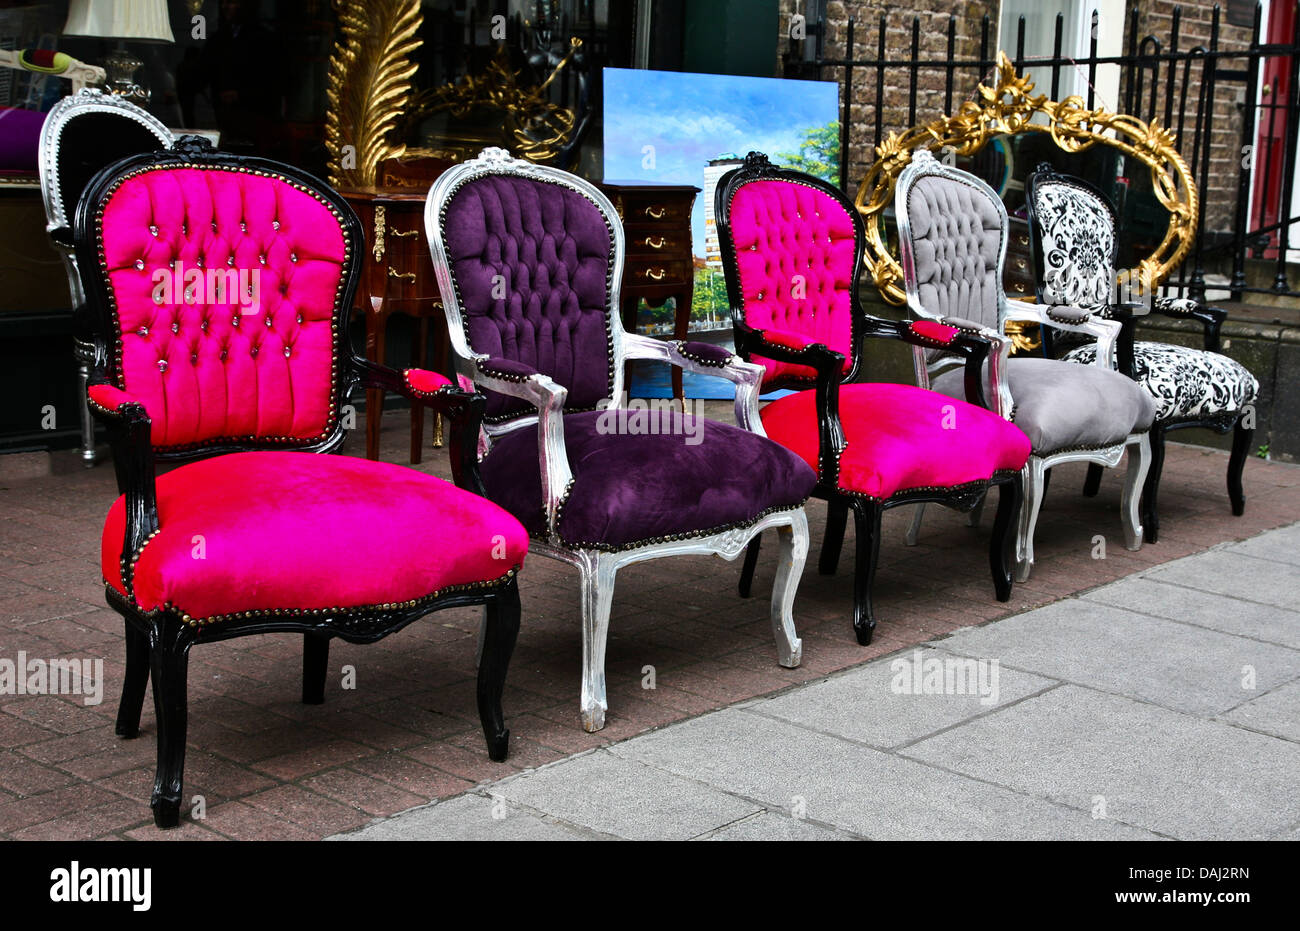 Colorful outdoor close up Victorian antique chairs displayed in a row in  front of an antique store in Dublin, Ireland, vintage objects, chair  abstract - Colorful Outdoor Close Up Victorian Antique Chairs Displayed In A